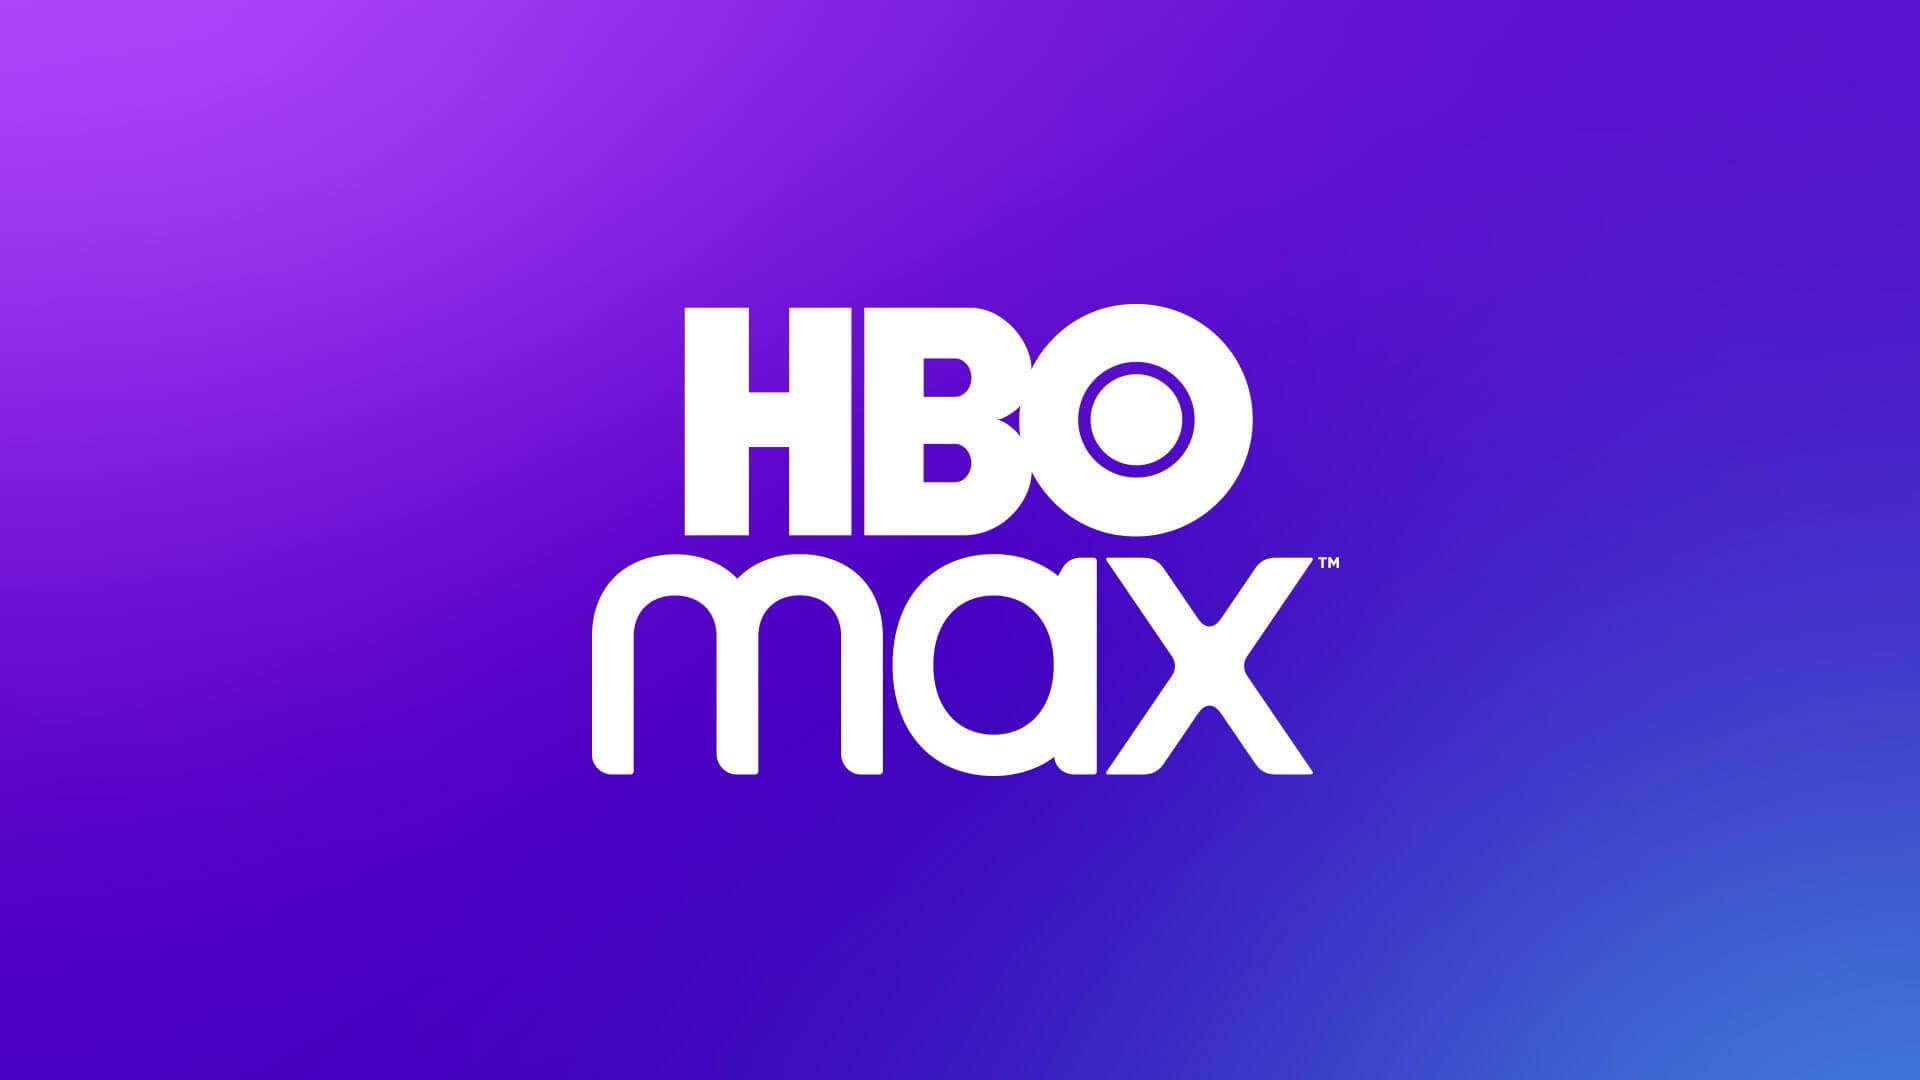 Sonya Blade, Liu Kang, and Sub-Zero Appeared in the HBO Max Trailer